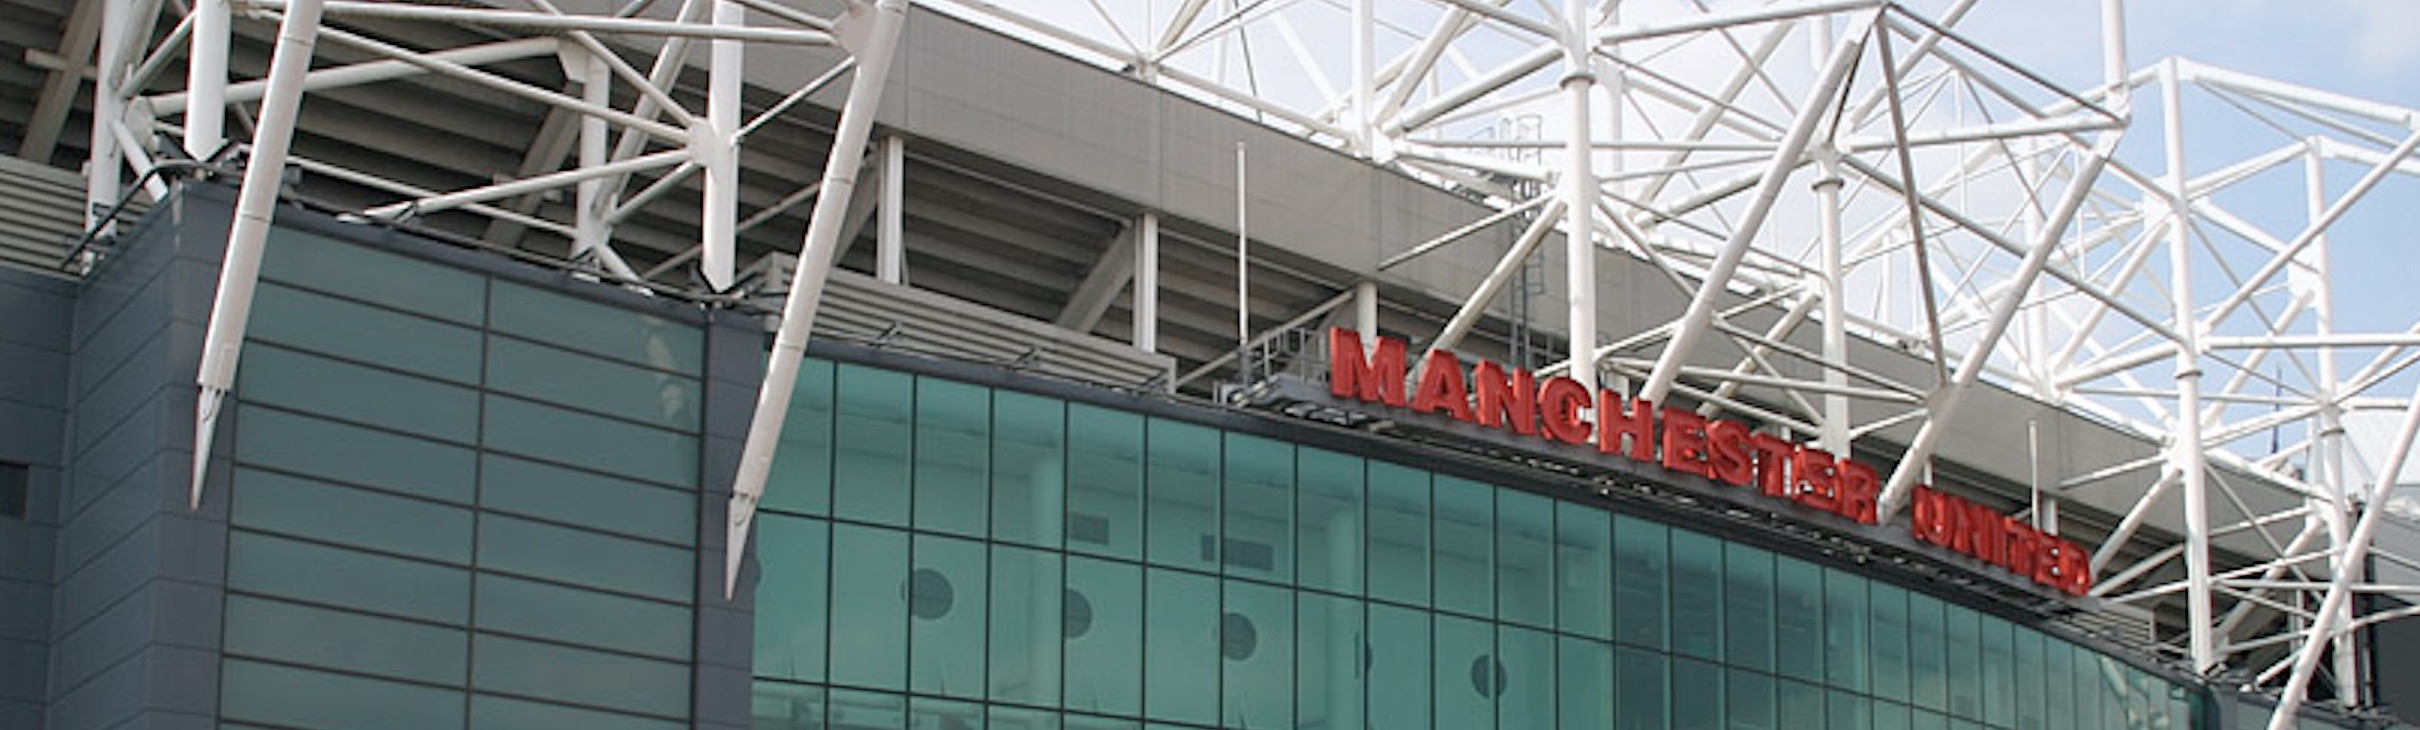 Man United V Tottenham - Coach/Ferry & Hotel